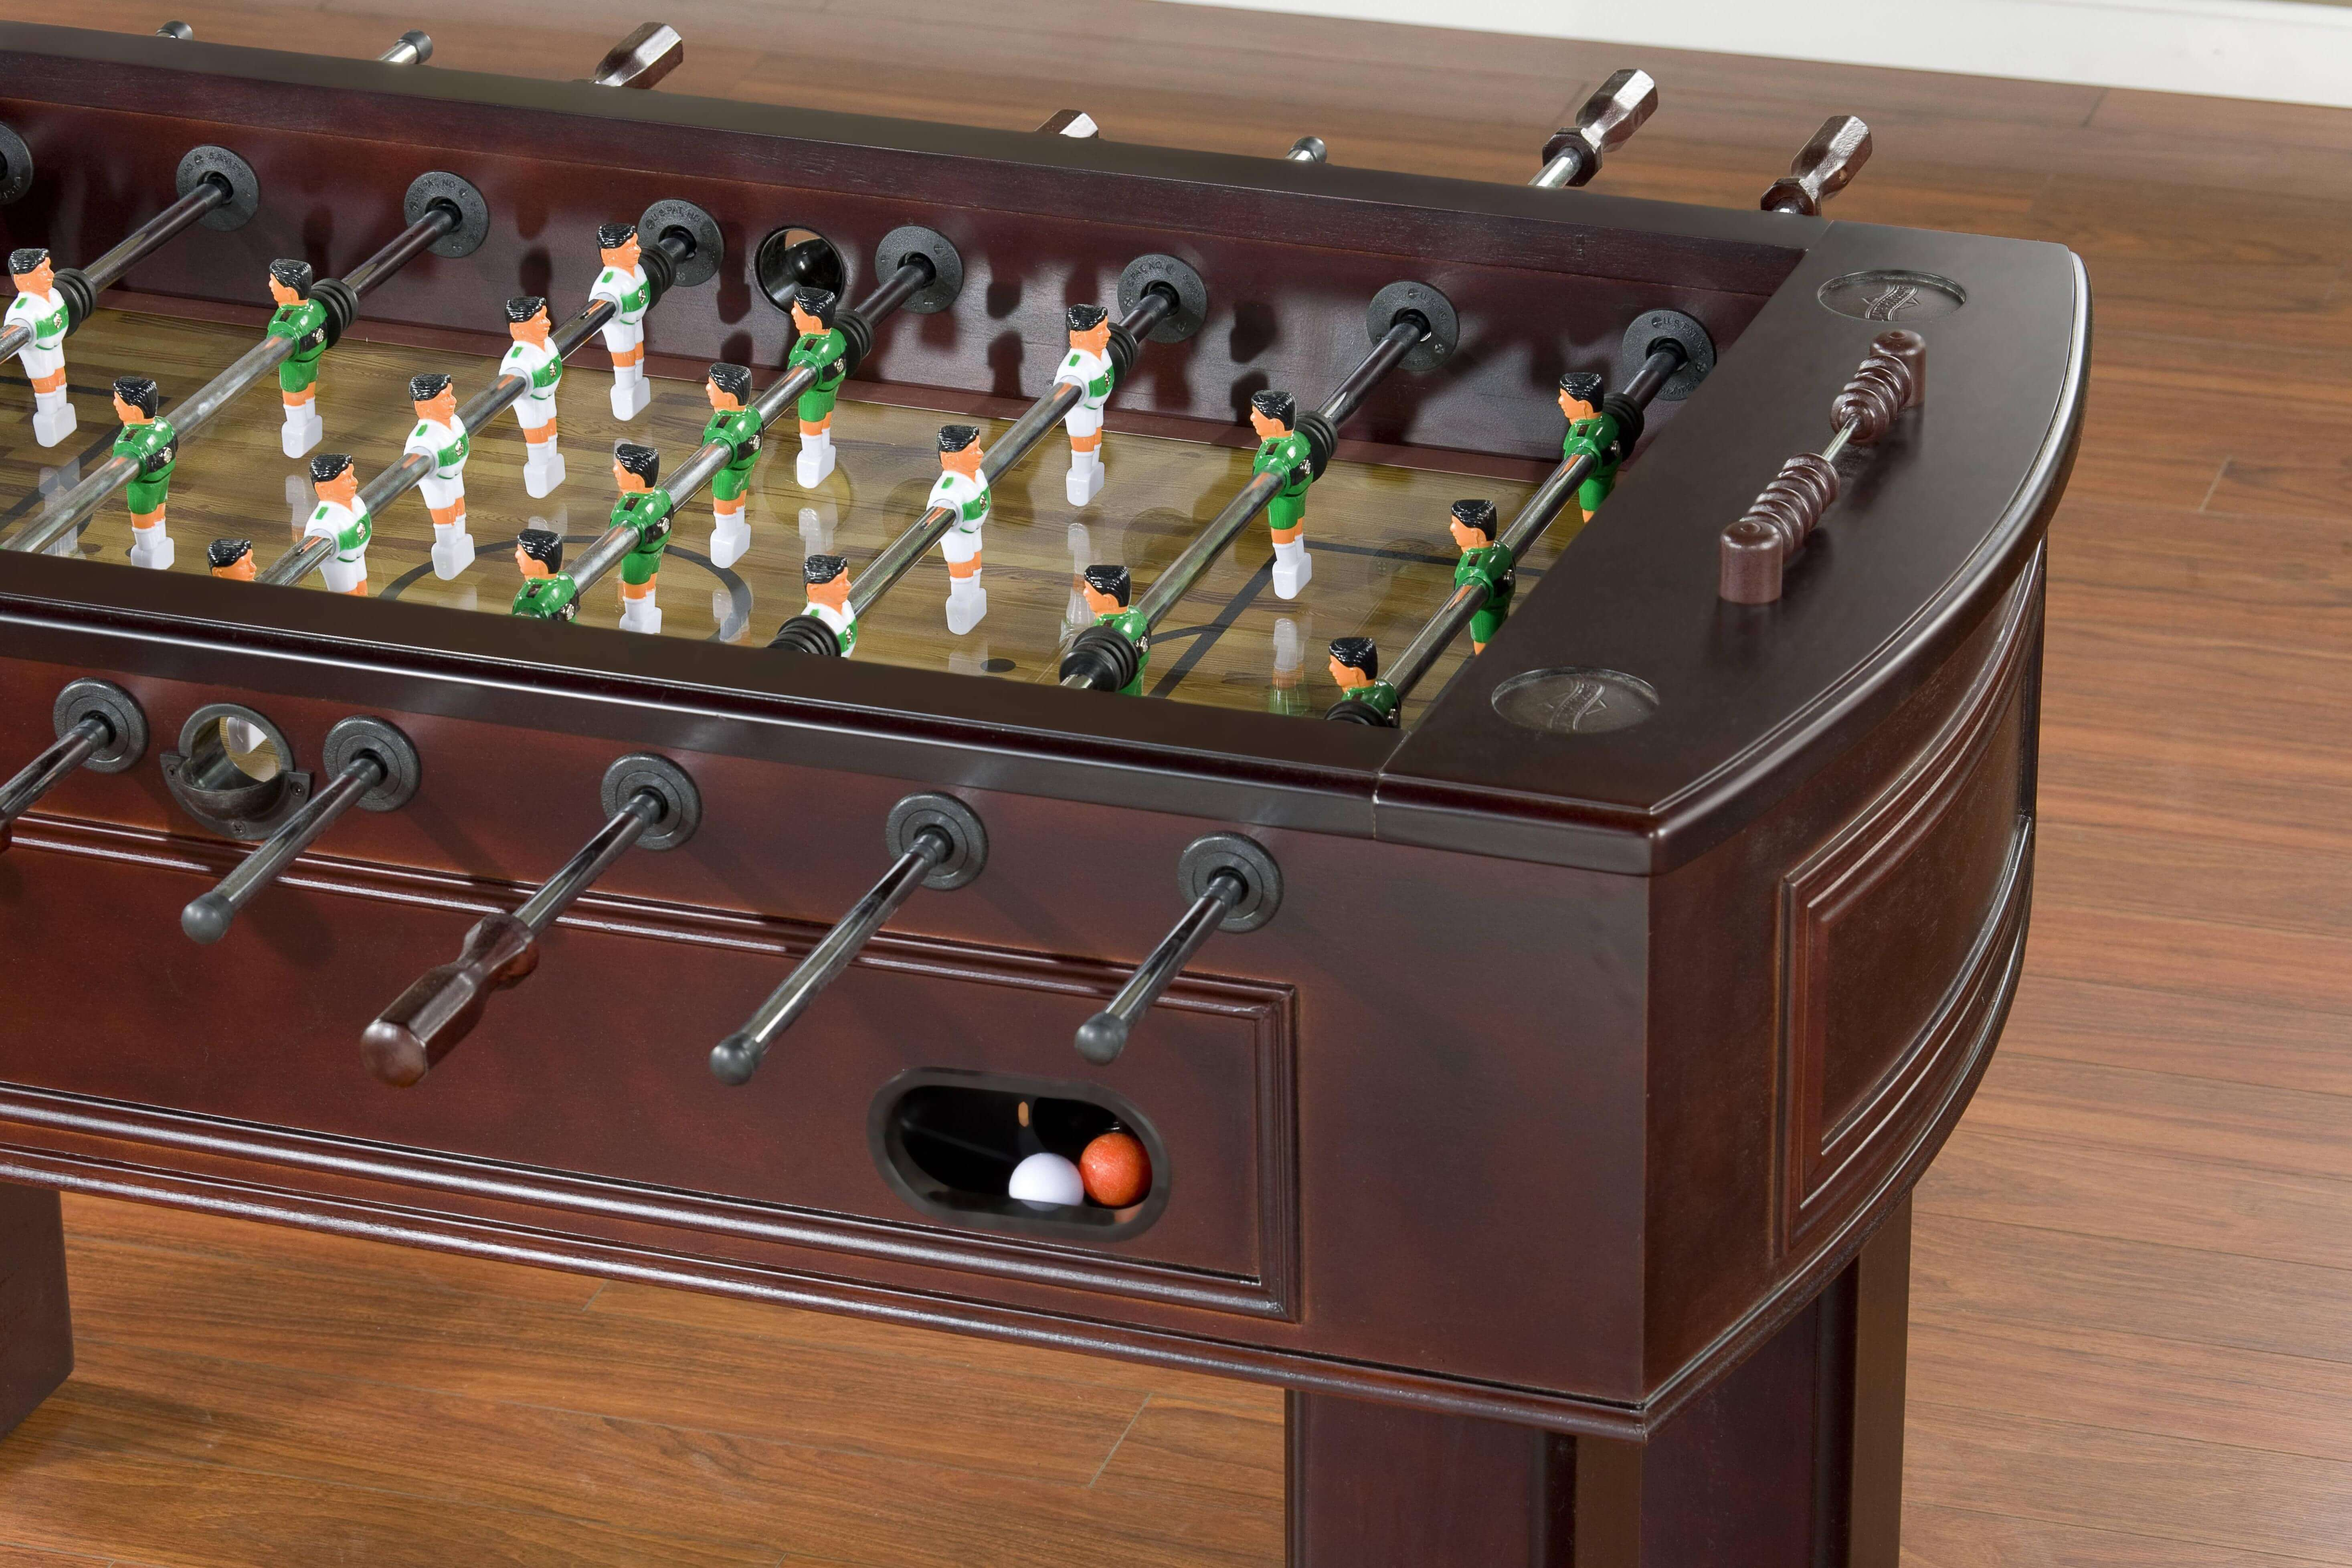 foosball coffee table america underwater decor cool metal accent marble and outdoor patio sets clearance small garden chairs kenzie high dining room little lamp console barista